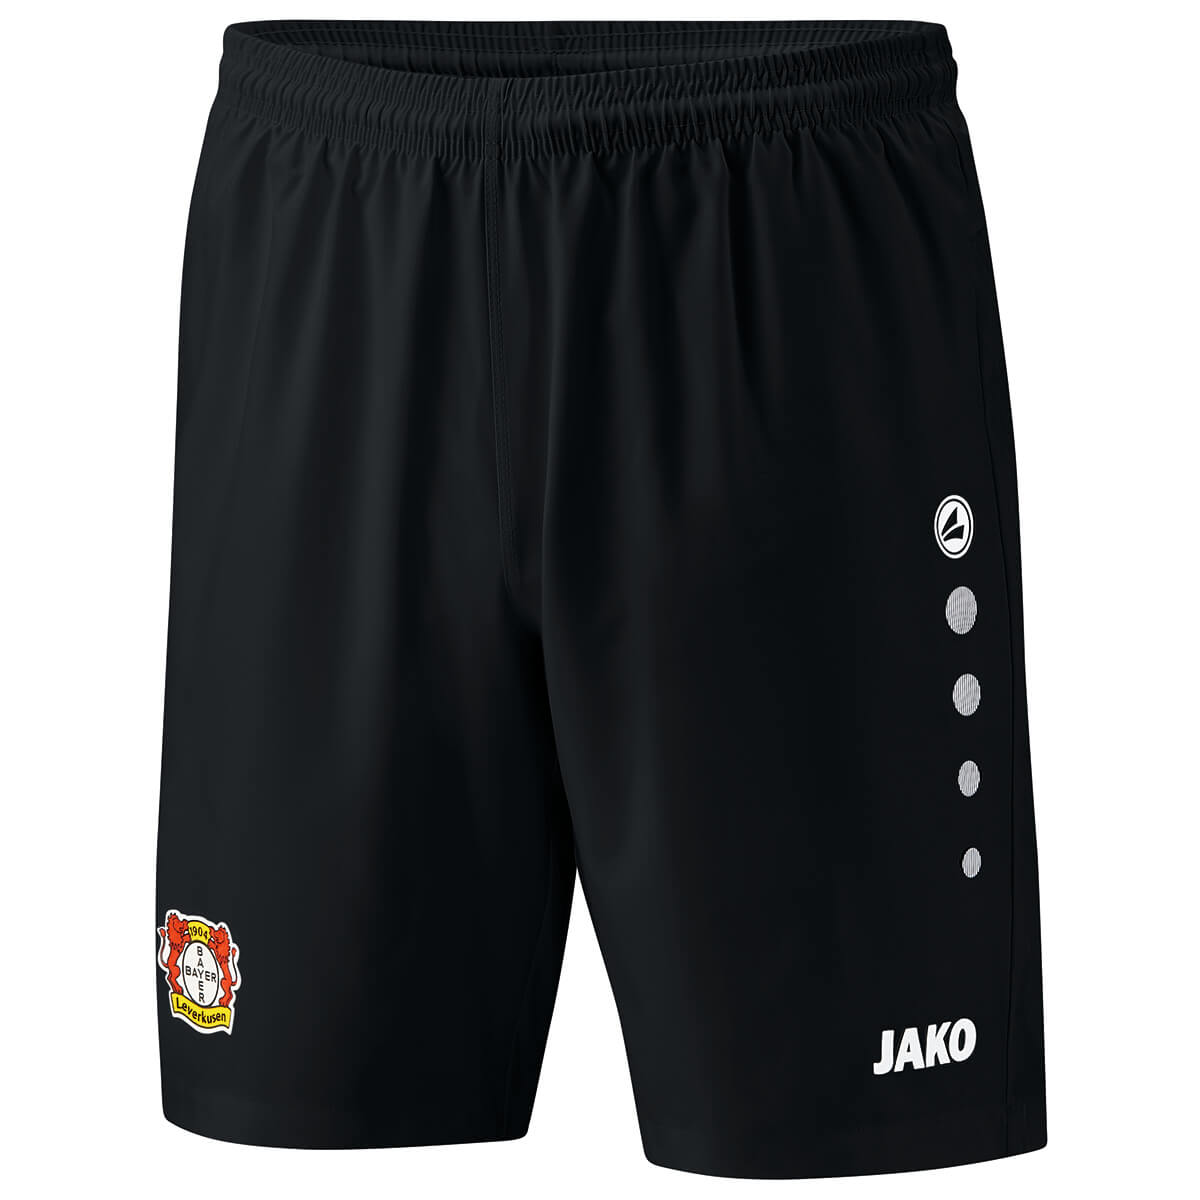 Bayer 04 Leverkusen Short Home - Kinder | Jako BA4418H